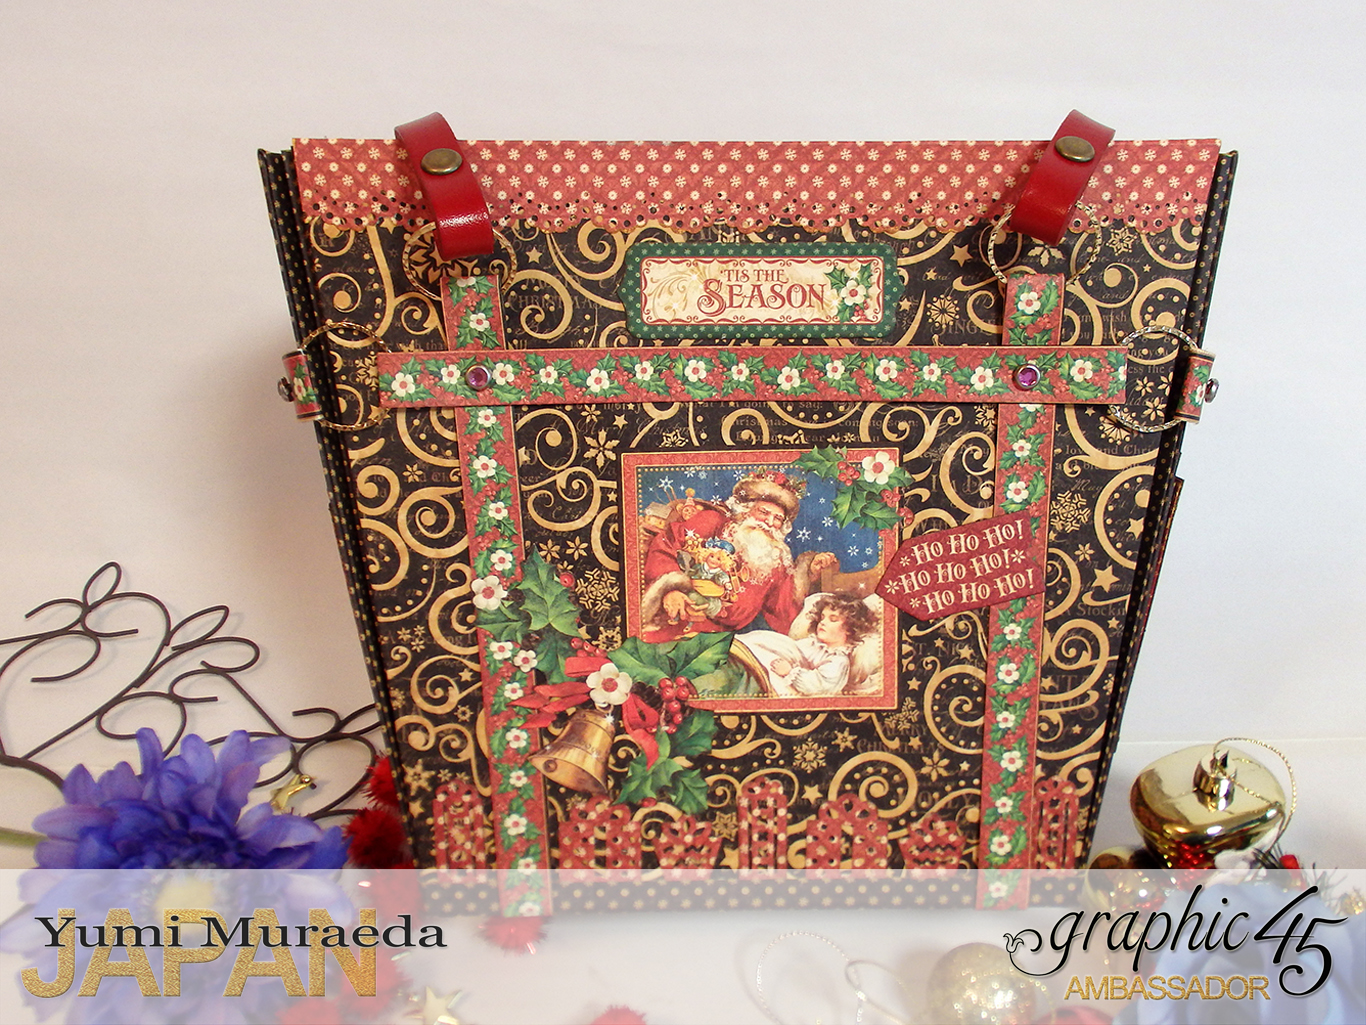 TownToteBagGraphic45StNich0lasbyYumiMuraeadaProductbyGraphic45Photo1.jpg